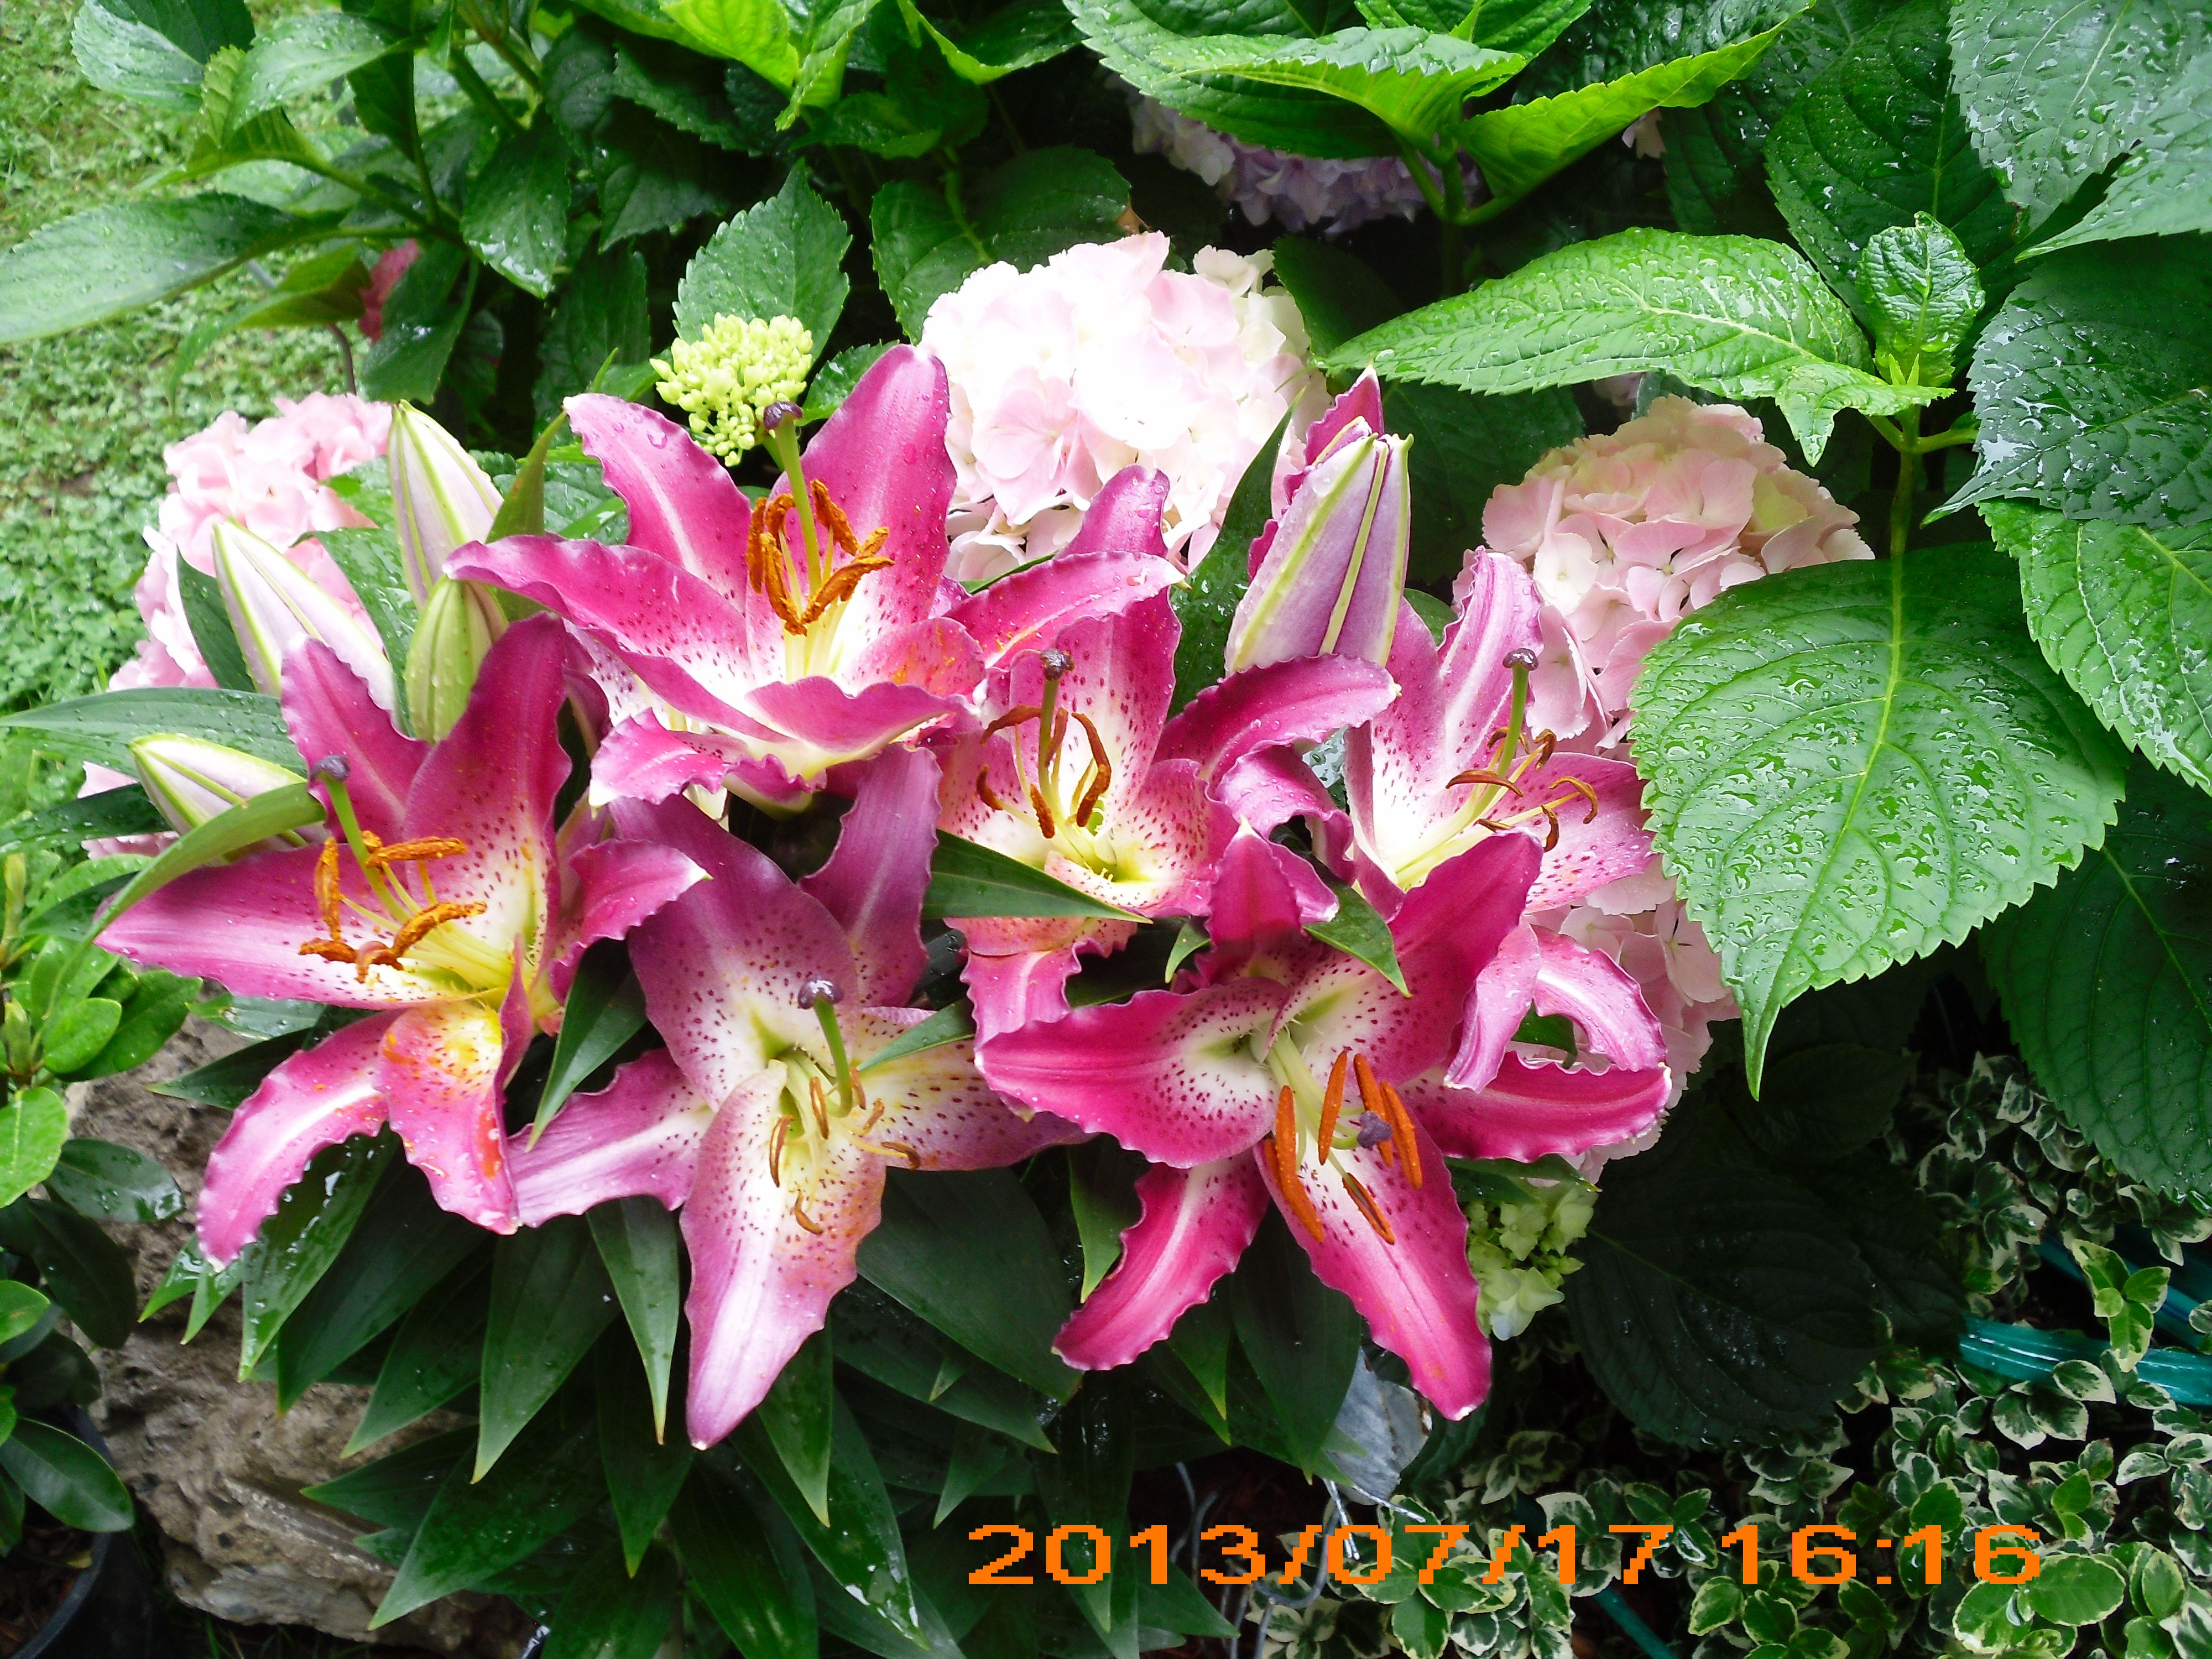 Giant pink lilies